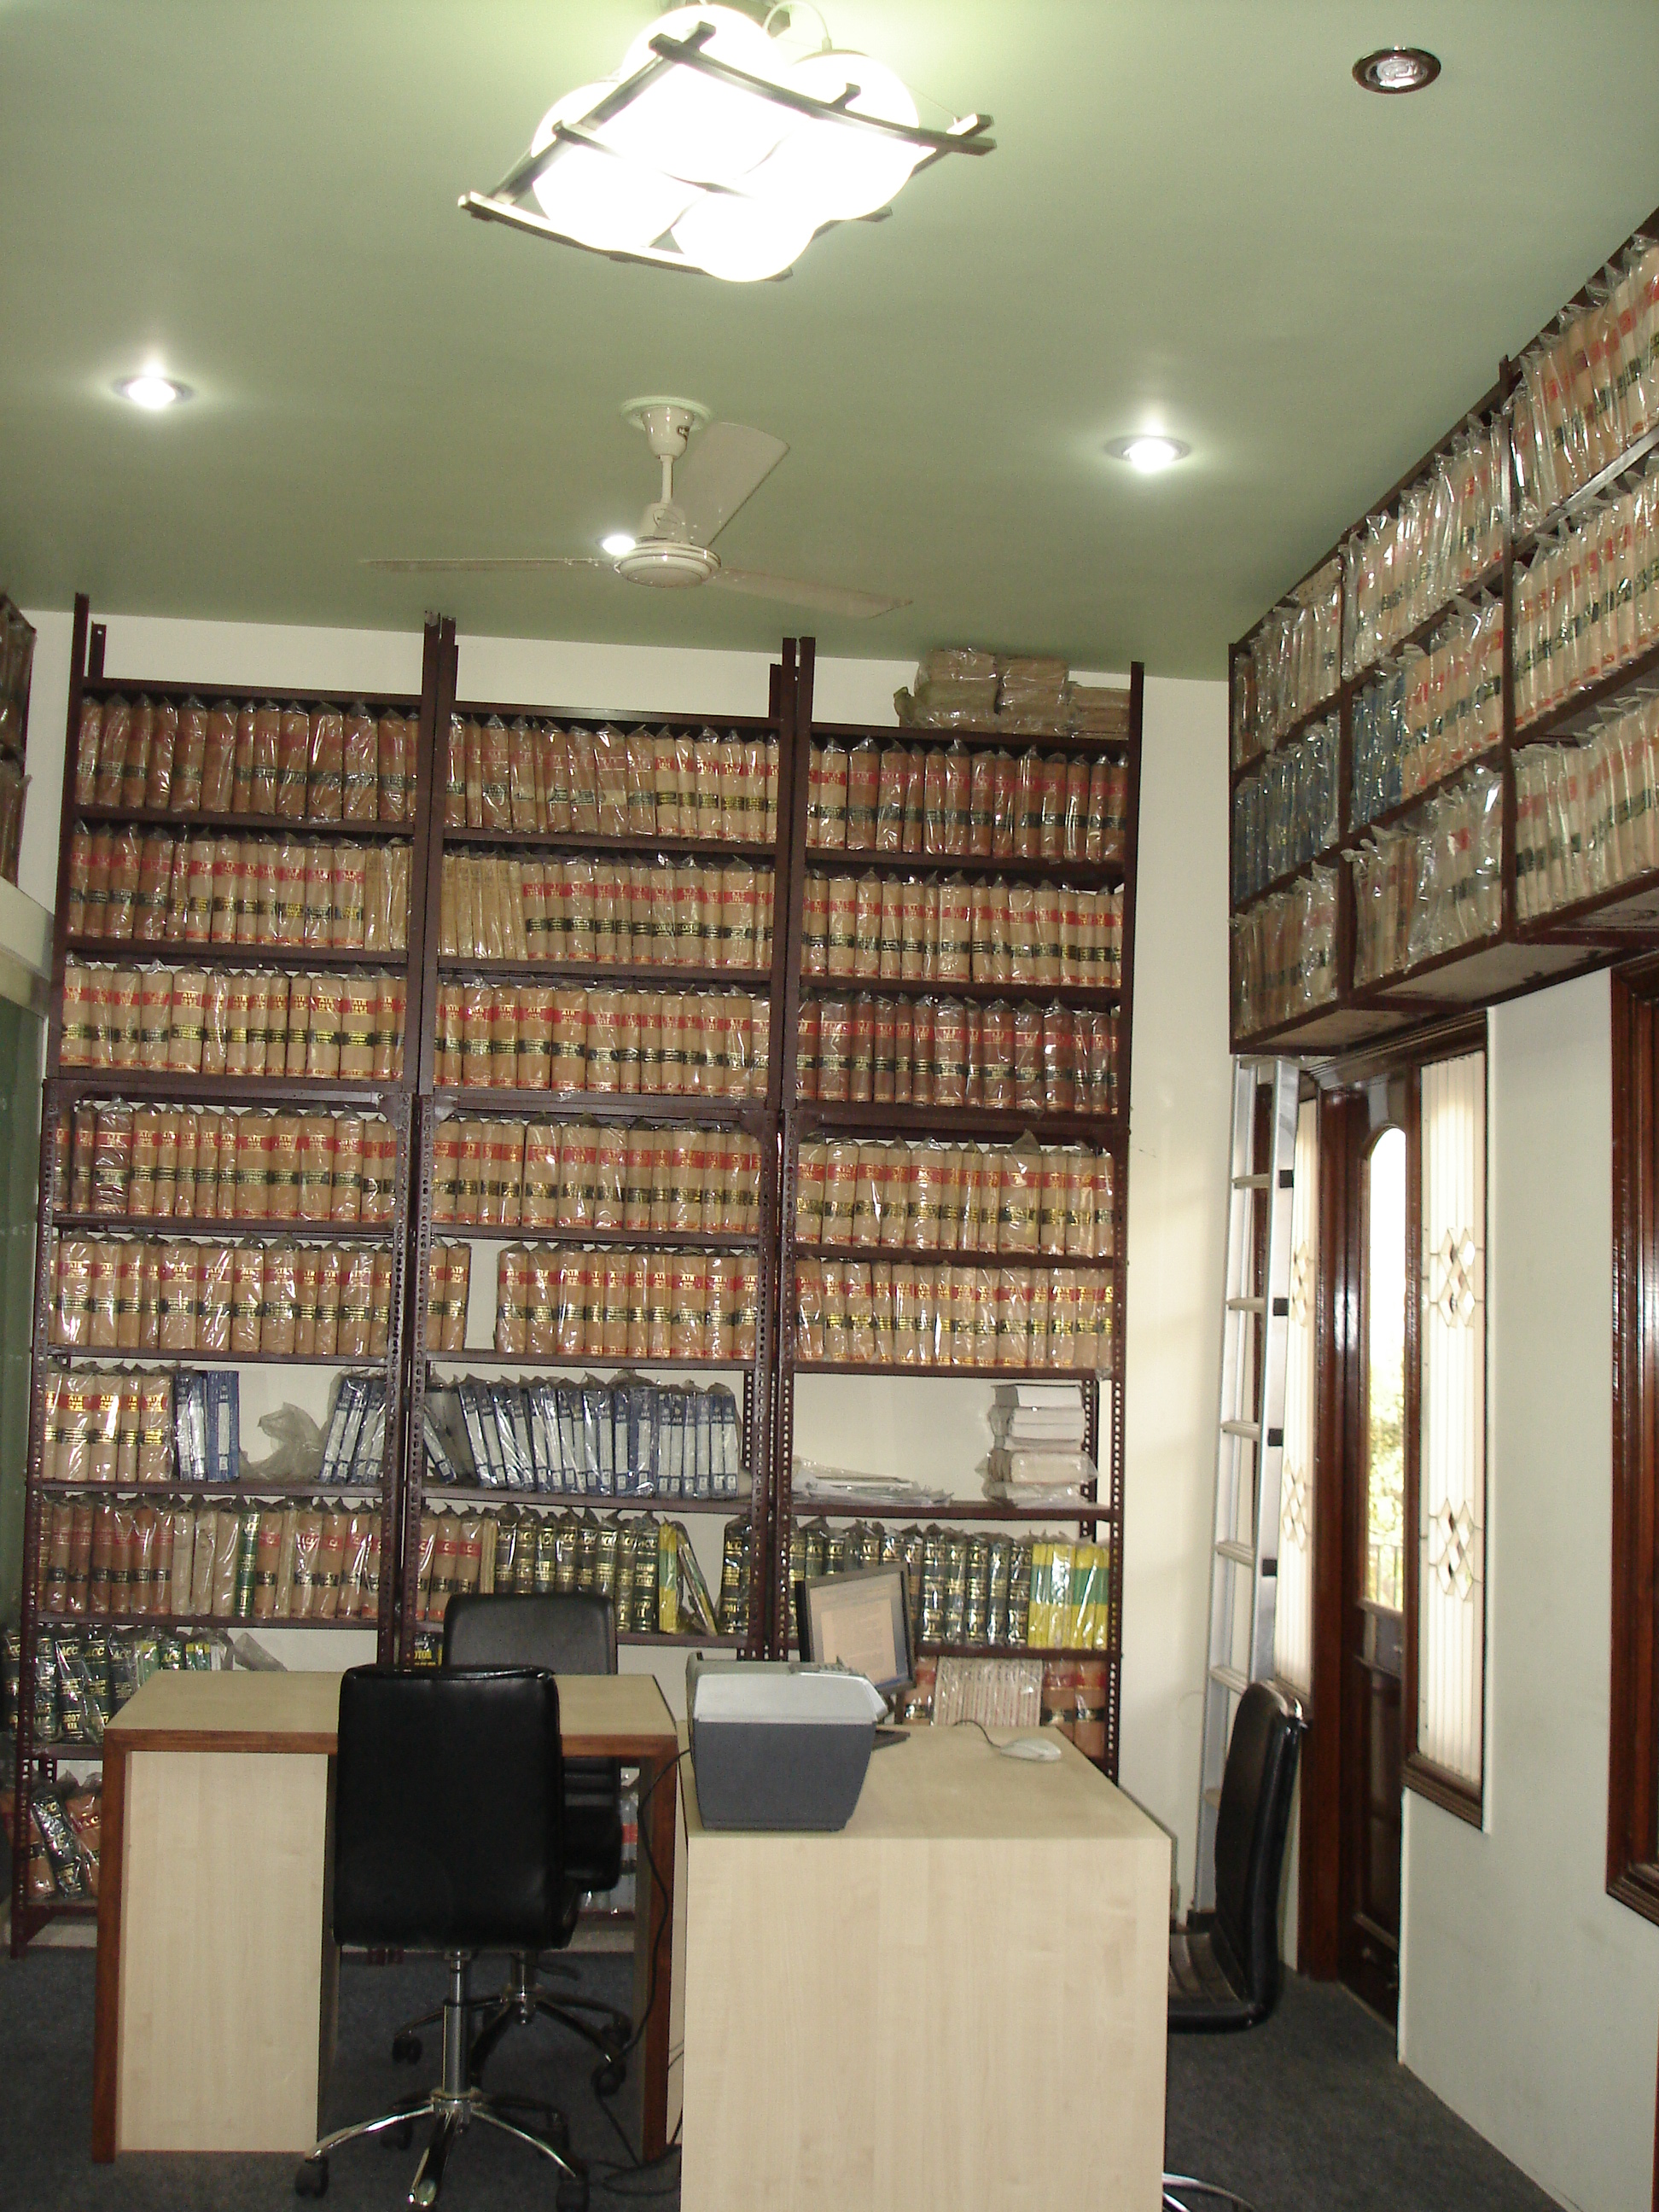 ADVOCATE OFFICE By Udita Bansal Agrawal At